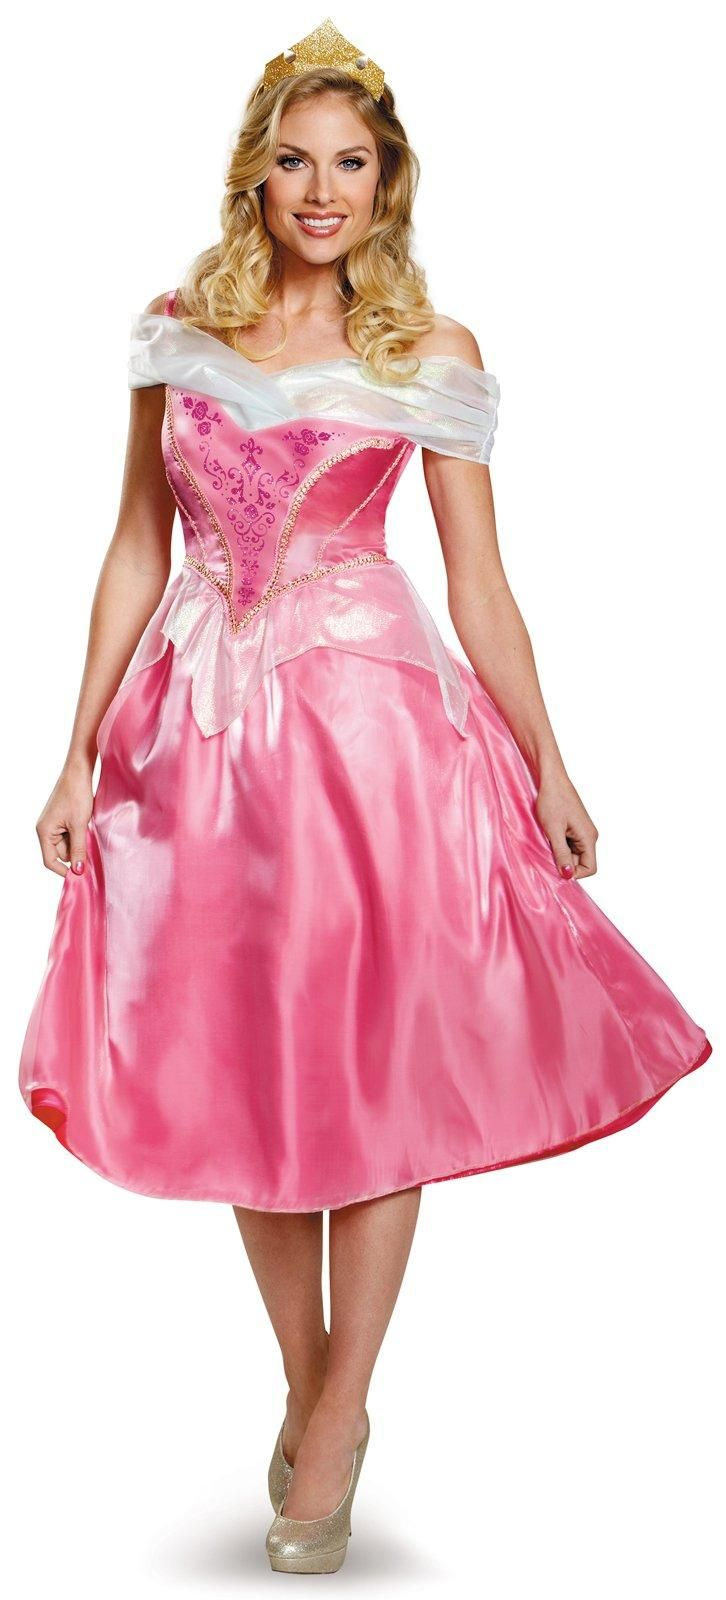 Disney Princess Womens Deluxe Plus Size Sleeping Beauty Costume from Buycostumes.com